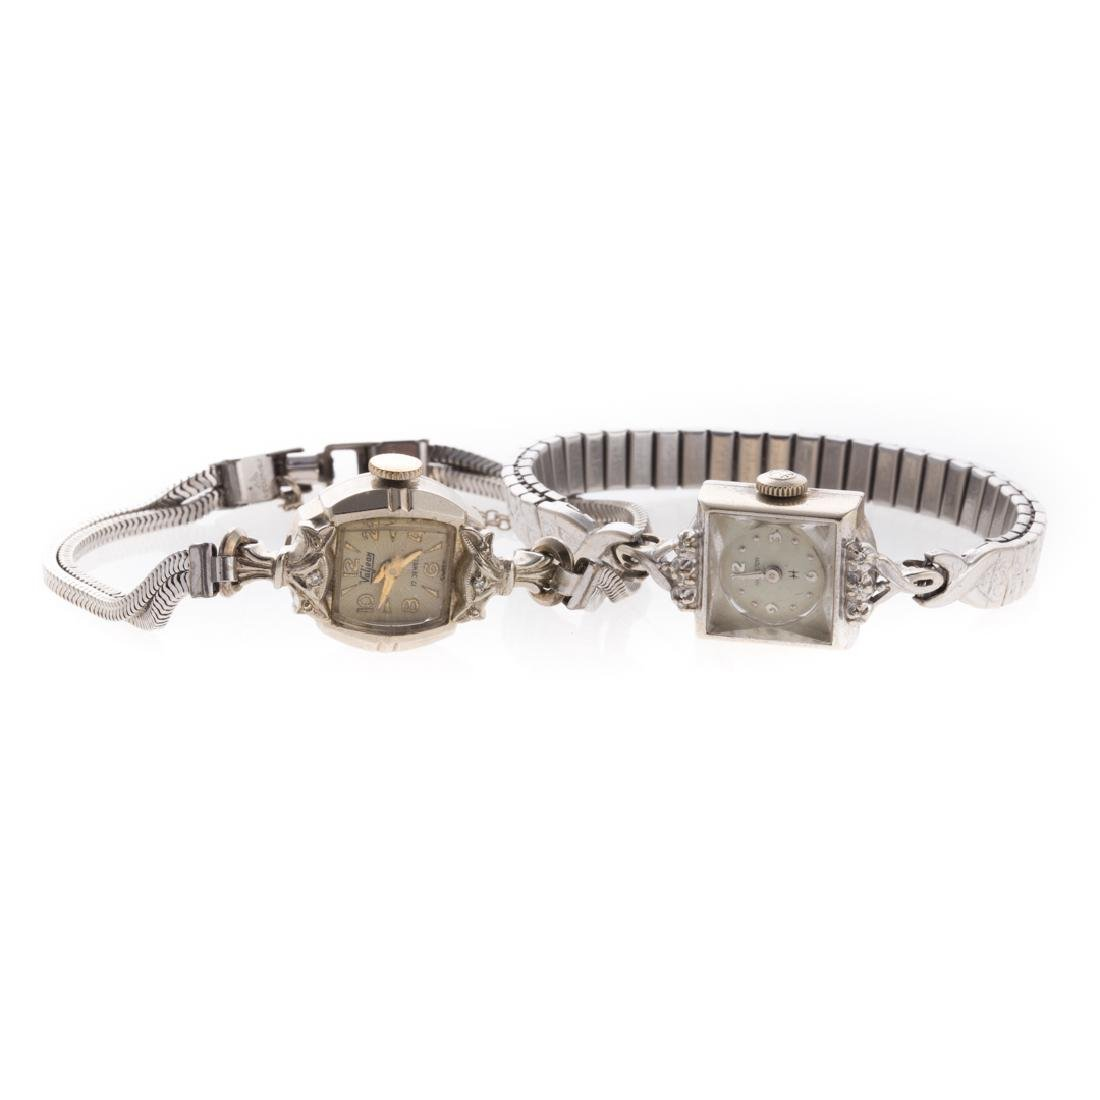 Two Lady's Vintage Watches in 14K & 10K Gold